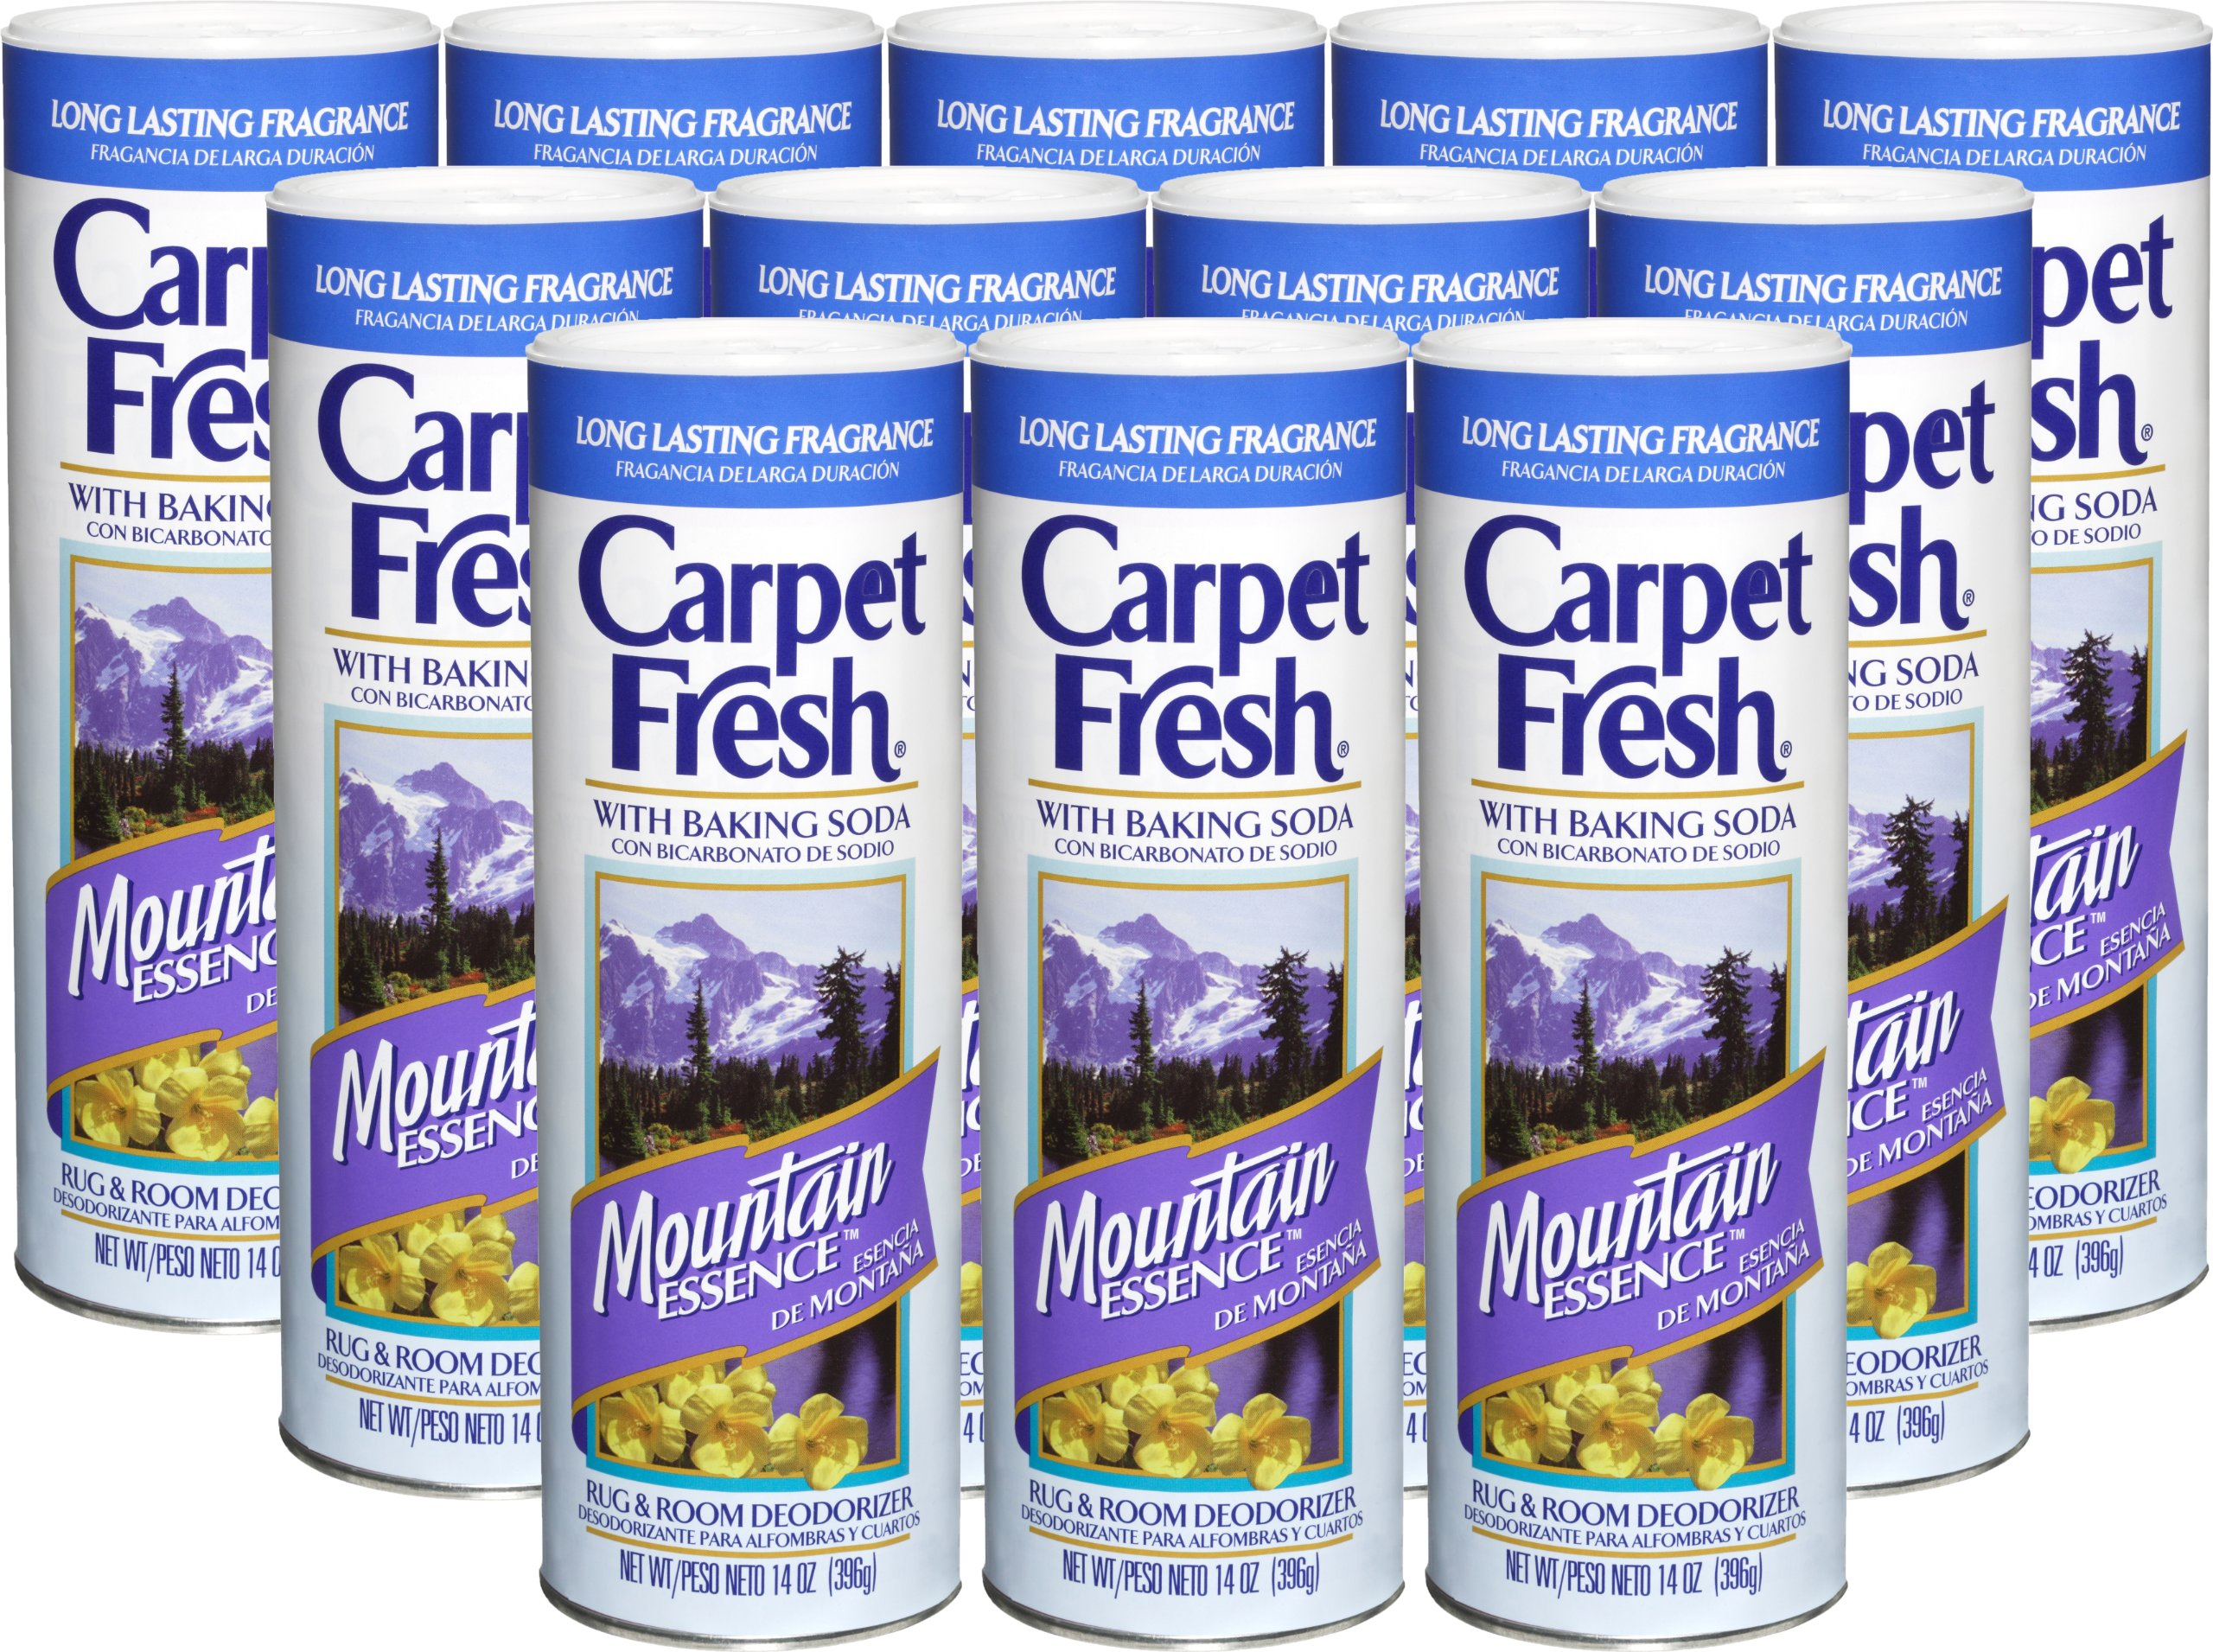 Carpet Fresh Rug and Room Deodorizer with Baking Soda, Mountain Essence Fragrance, 14 OZ [12-Pack]